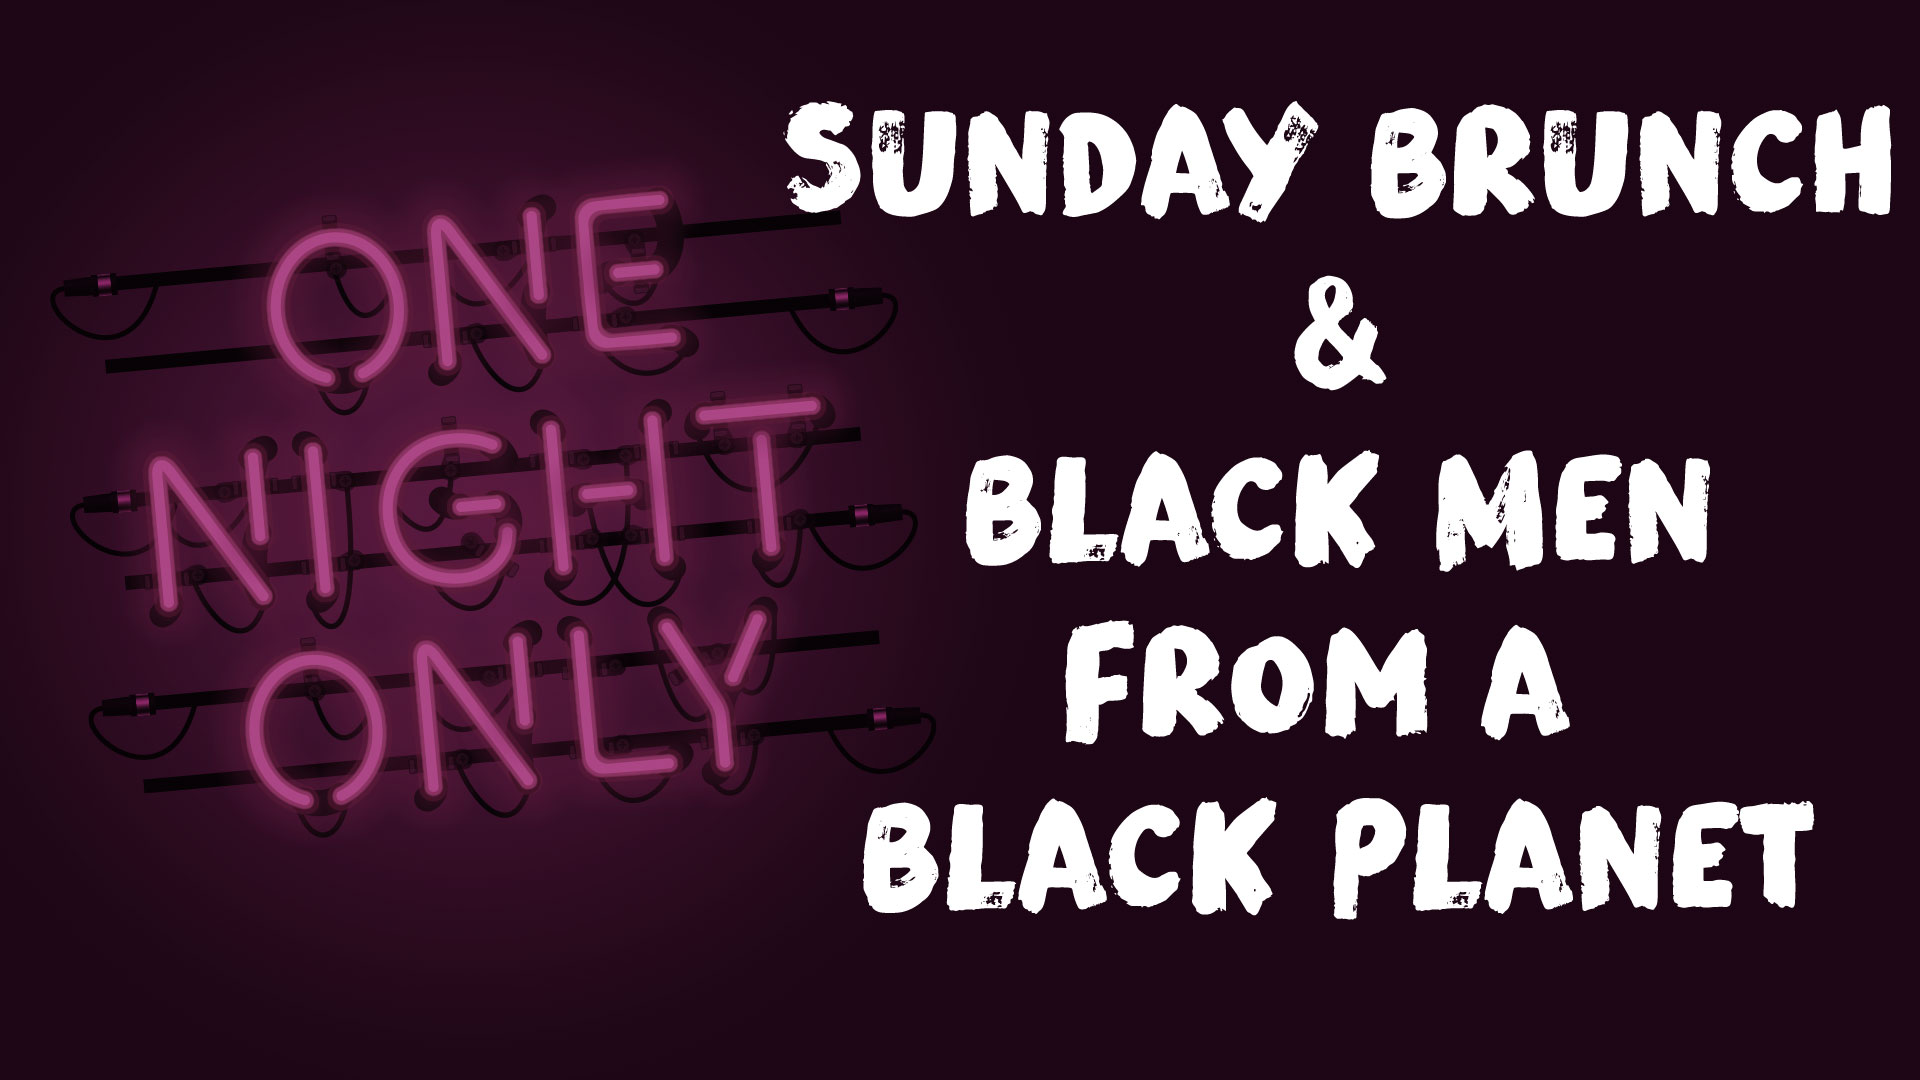 One Night Only: Sunday Brunch & Black Men from a Black Planet